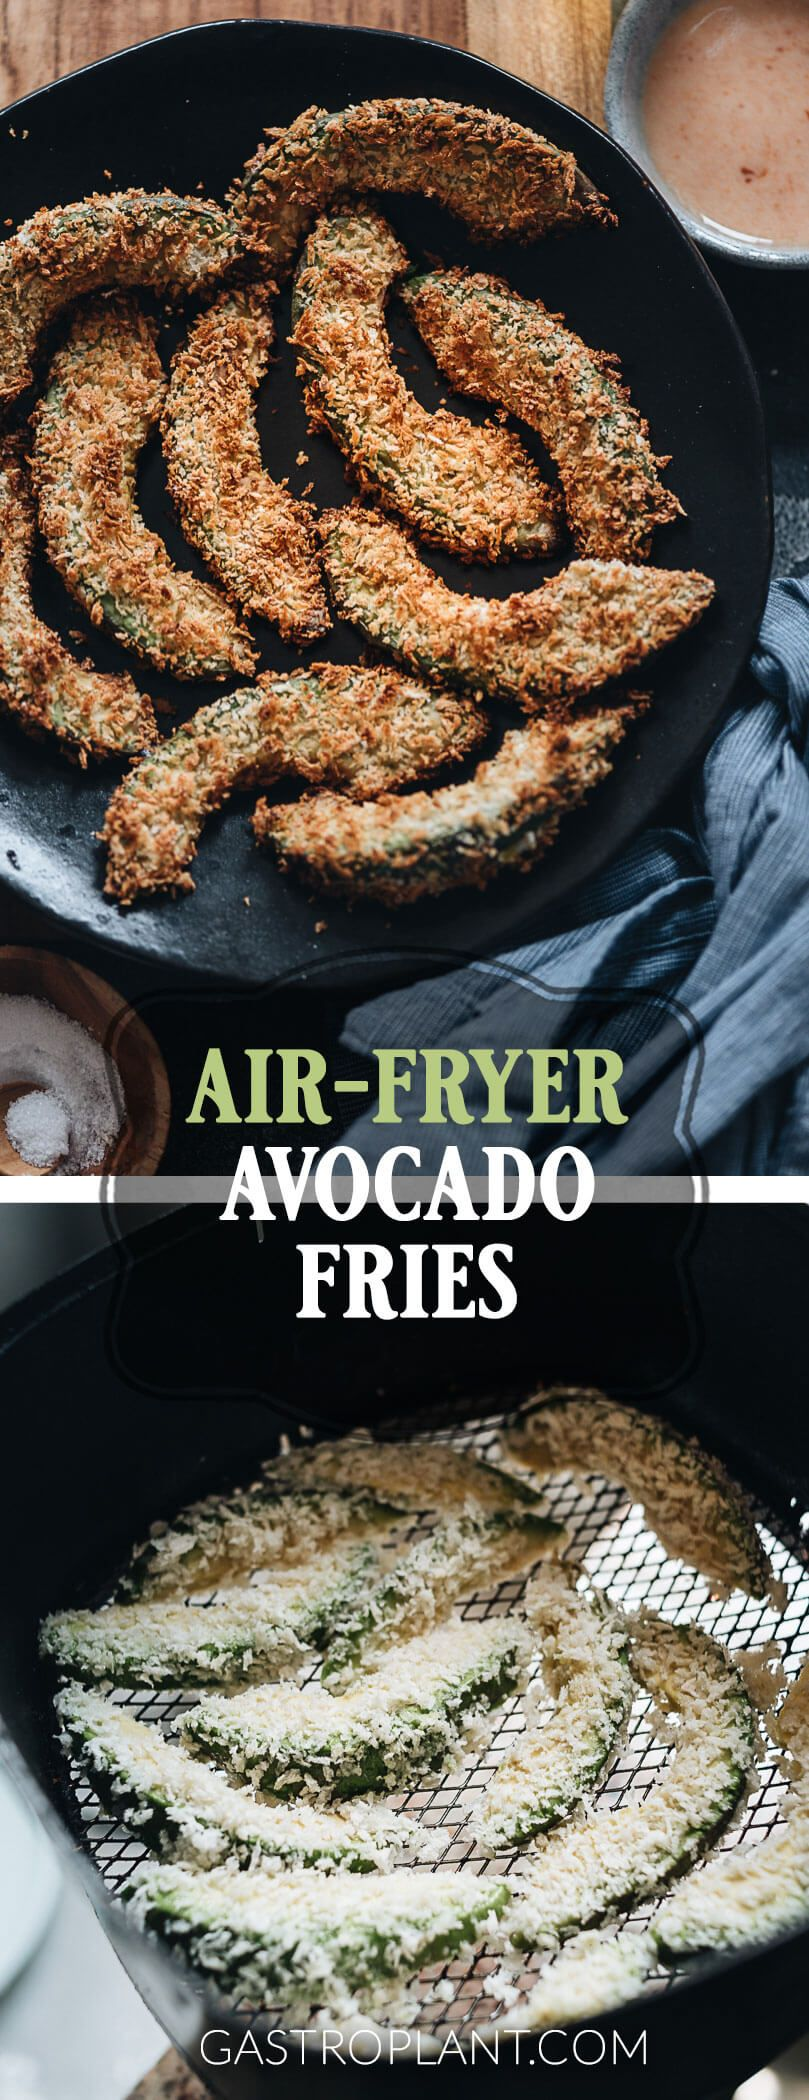 Air Fryer Avocado Fries They're exactly like they sound